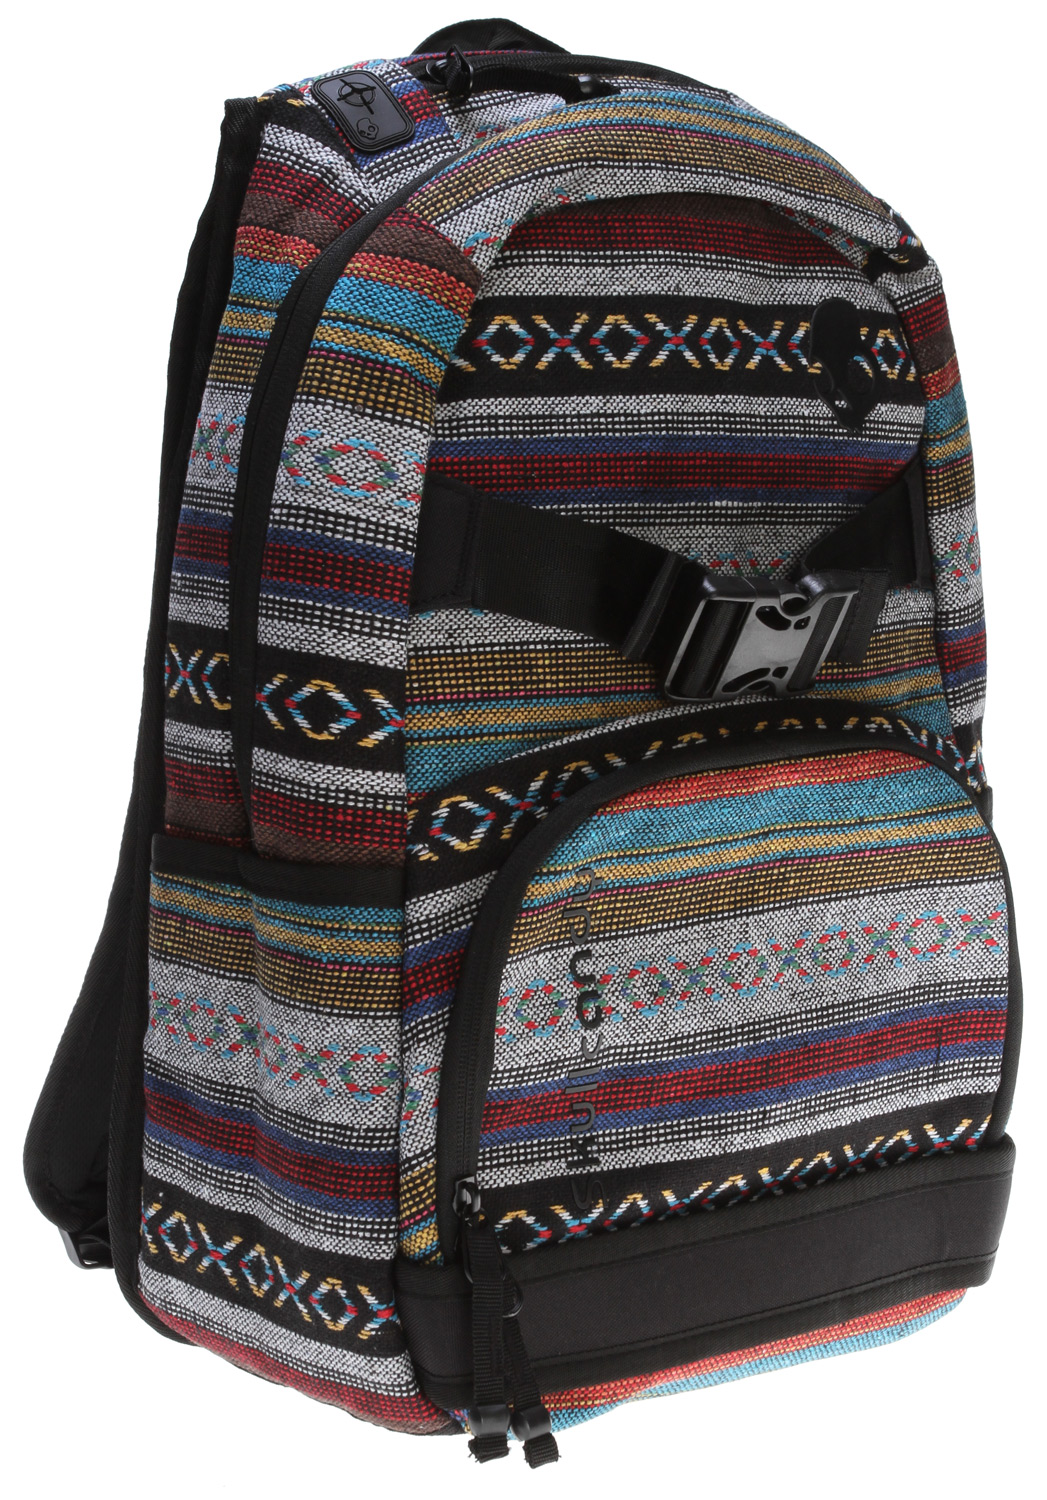 Skateboard The Skullcandy SKULLDAYLONG BACKPACK, keep it fresh-- all the skull day long.Key Features of the Skullcandy Skulldaylong Backpack: 600D roller print printed liner reverse tape zippers Front skate straps front zip pocket dual side utility pockets includes internal organization with- flap over velcro pocket zip pocket triple pencil holders. Large main compartment includes internal organizer with top load pocket and key clip. Top zip media pocket with 3 internal padded no scratch fleece lined velcro flap over pockets molded rubber cord port padded contoured straps padded back strap tension adjusters top padded carry handle front embroidered logo front applique skull logo back embroidered logos multiple woven loop labels logo gel tip zipper pulls - $34.95